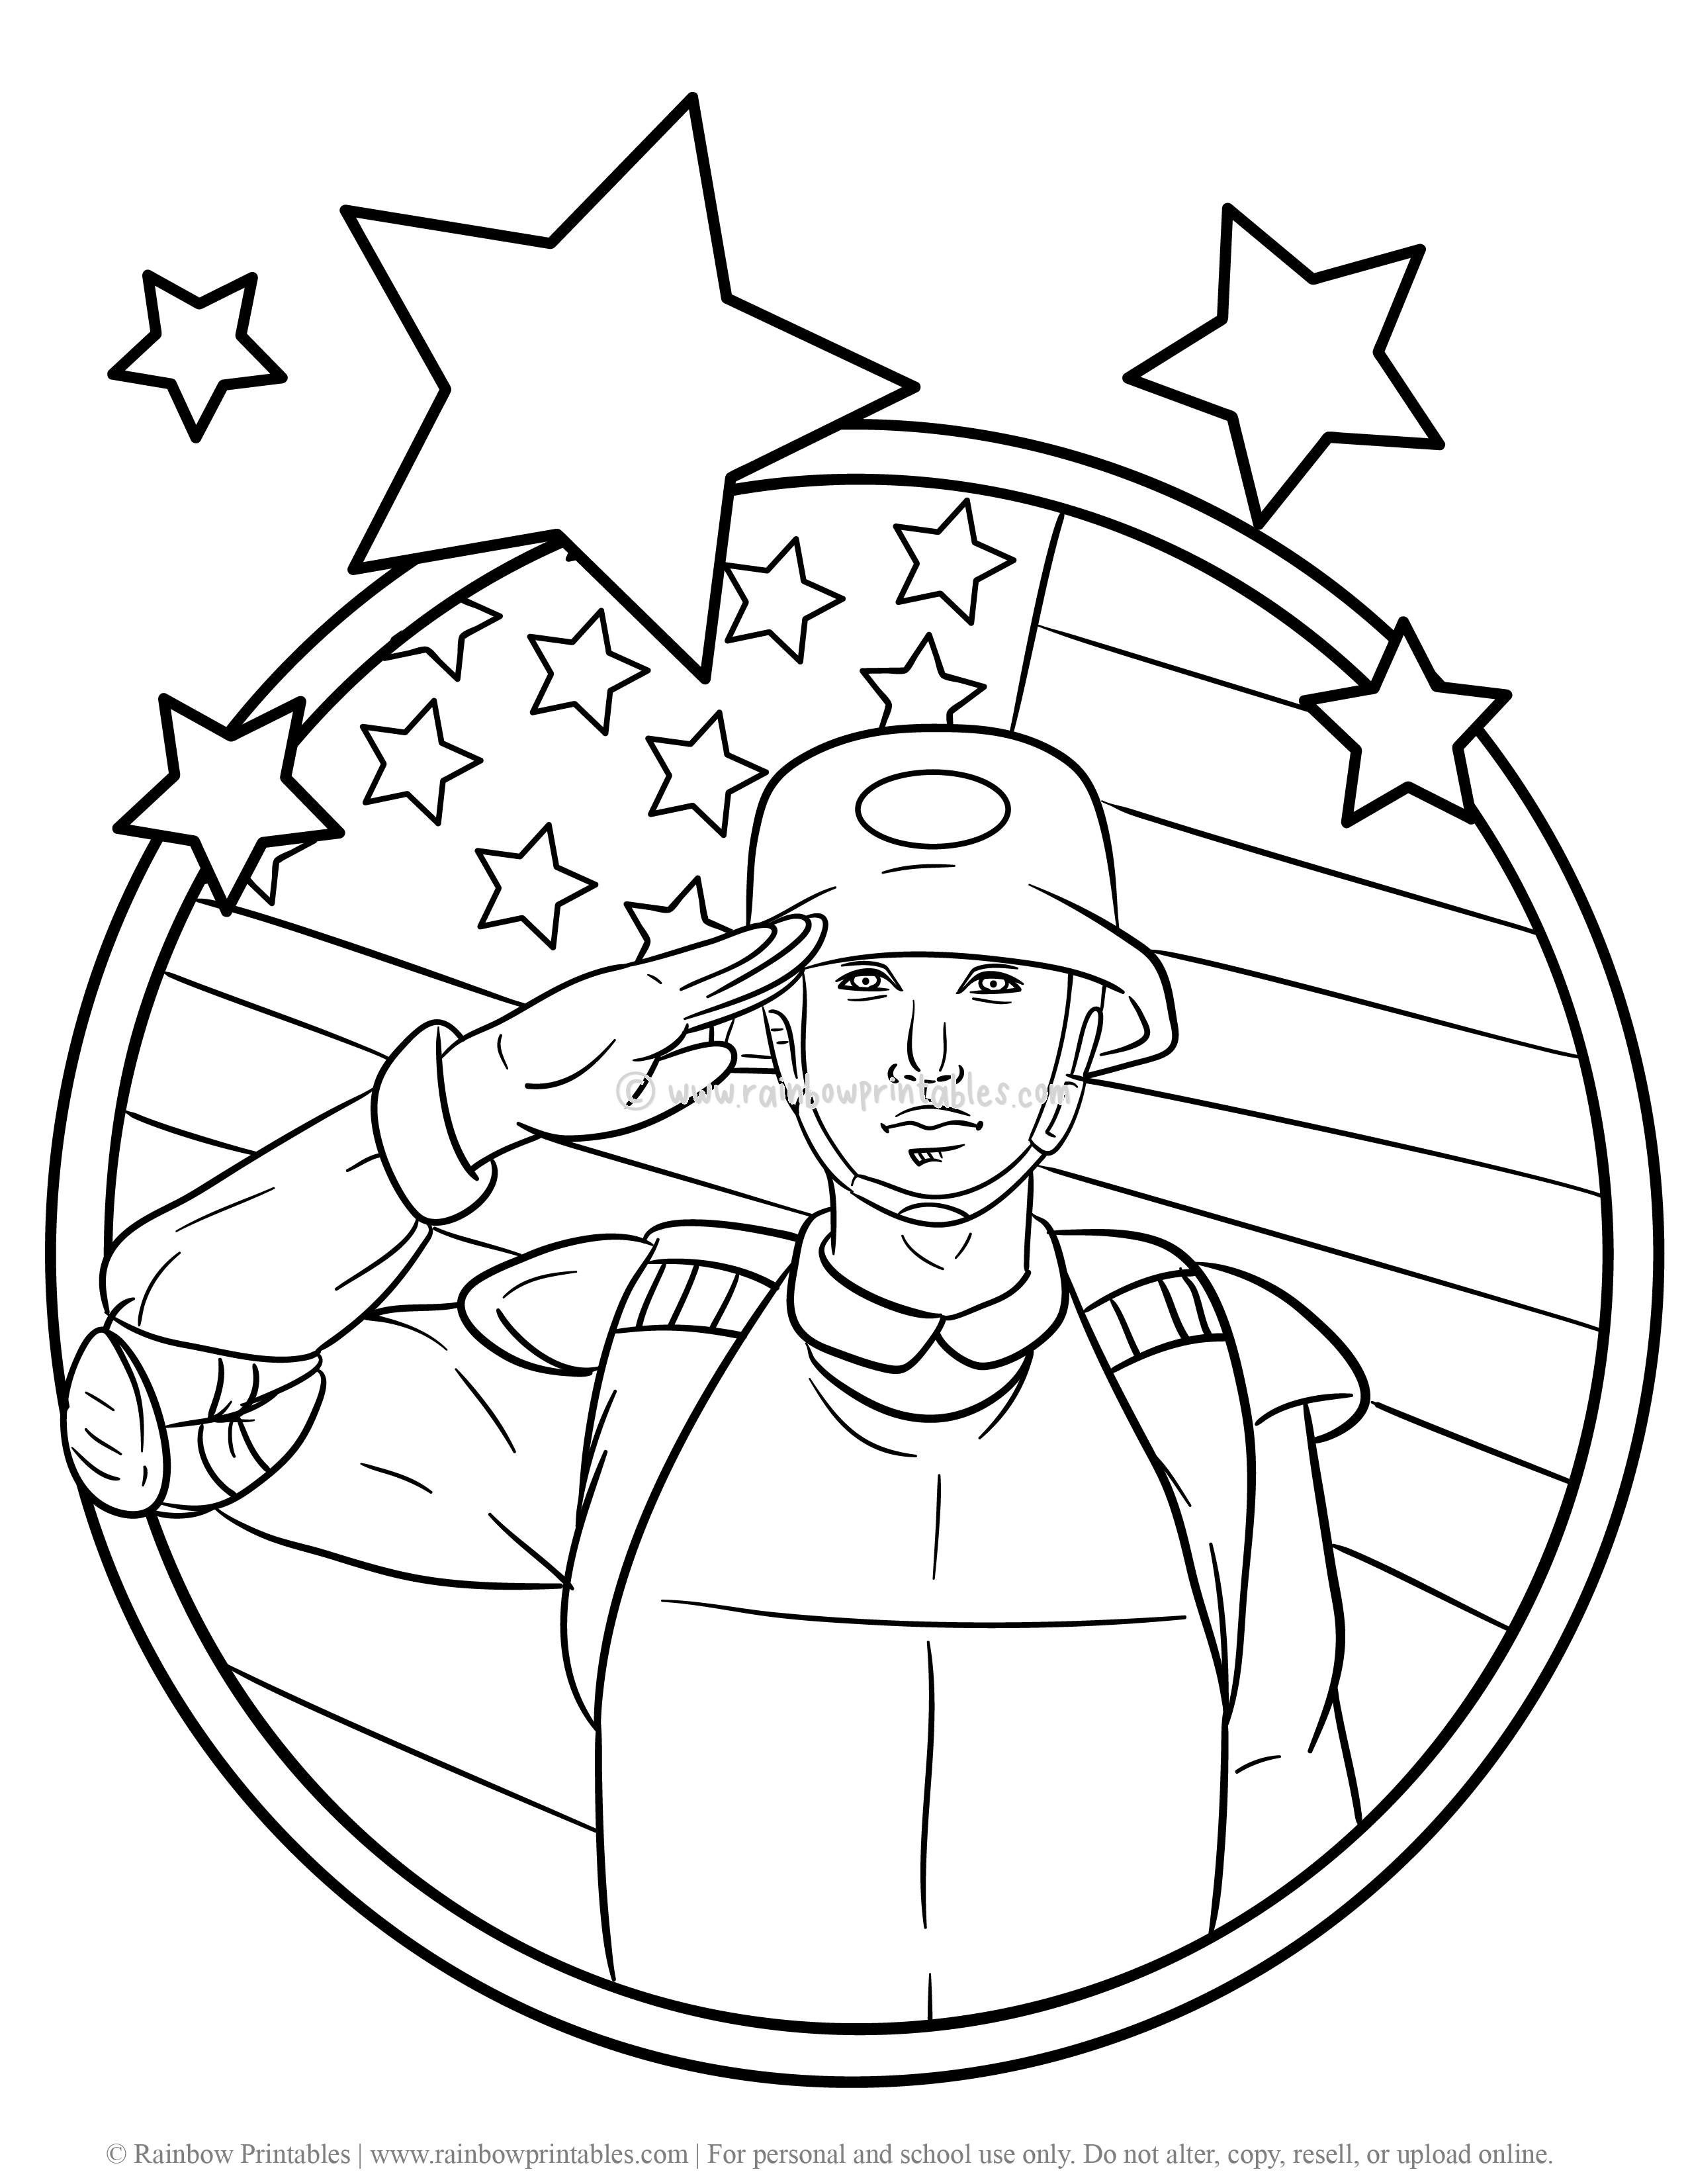 7 Free U.S. Military Army Soldier Coloring Pages for Kids